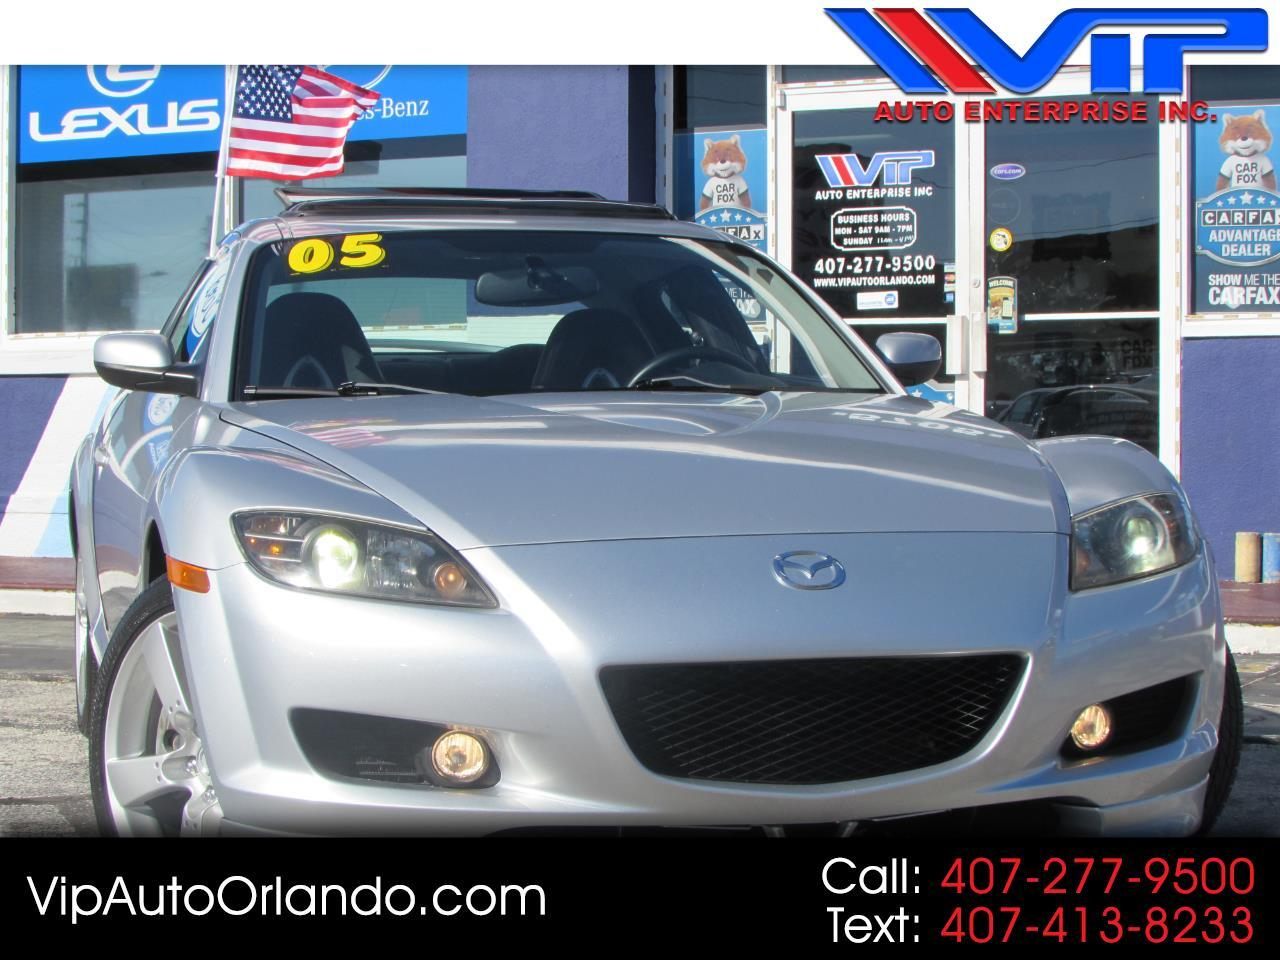 2005 Mazda RX-8 4dr Cpe 6-Spd Manual